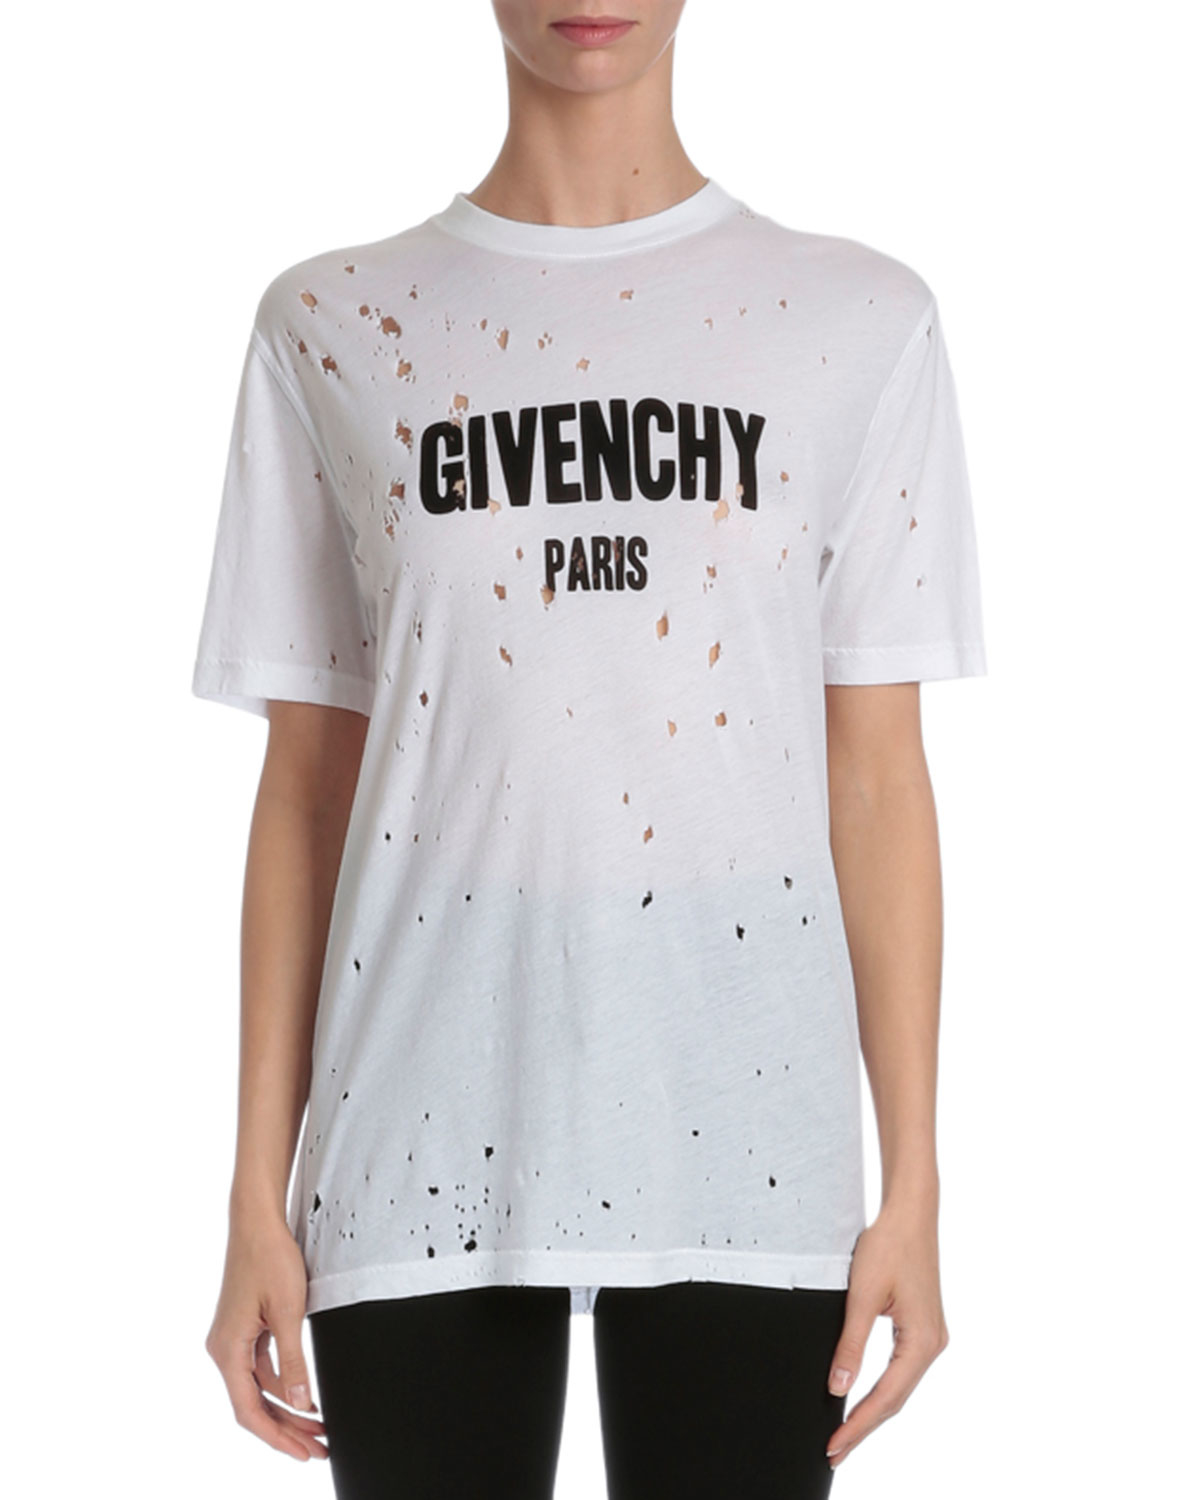 8b8350148 Gallery. Previously sold at: Bergdorf Goodman · Women's Distressed T Shirts